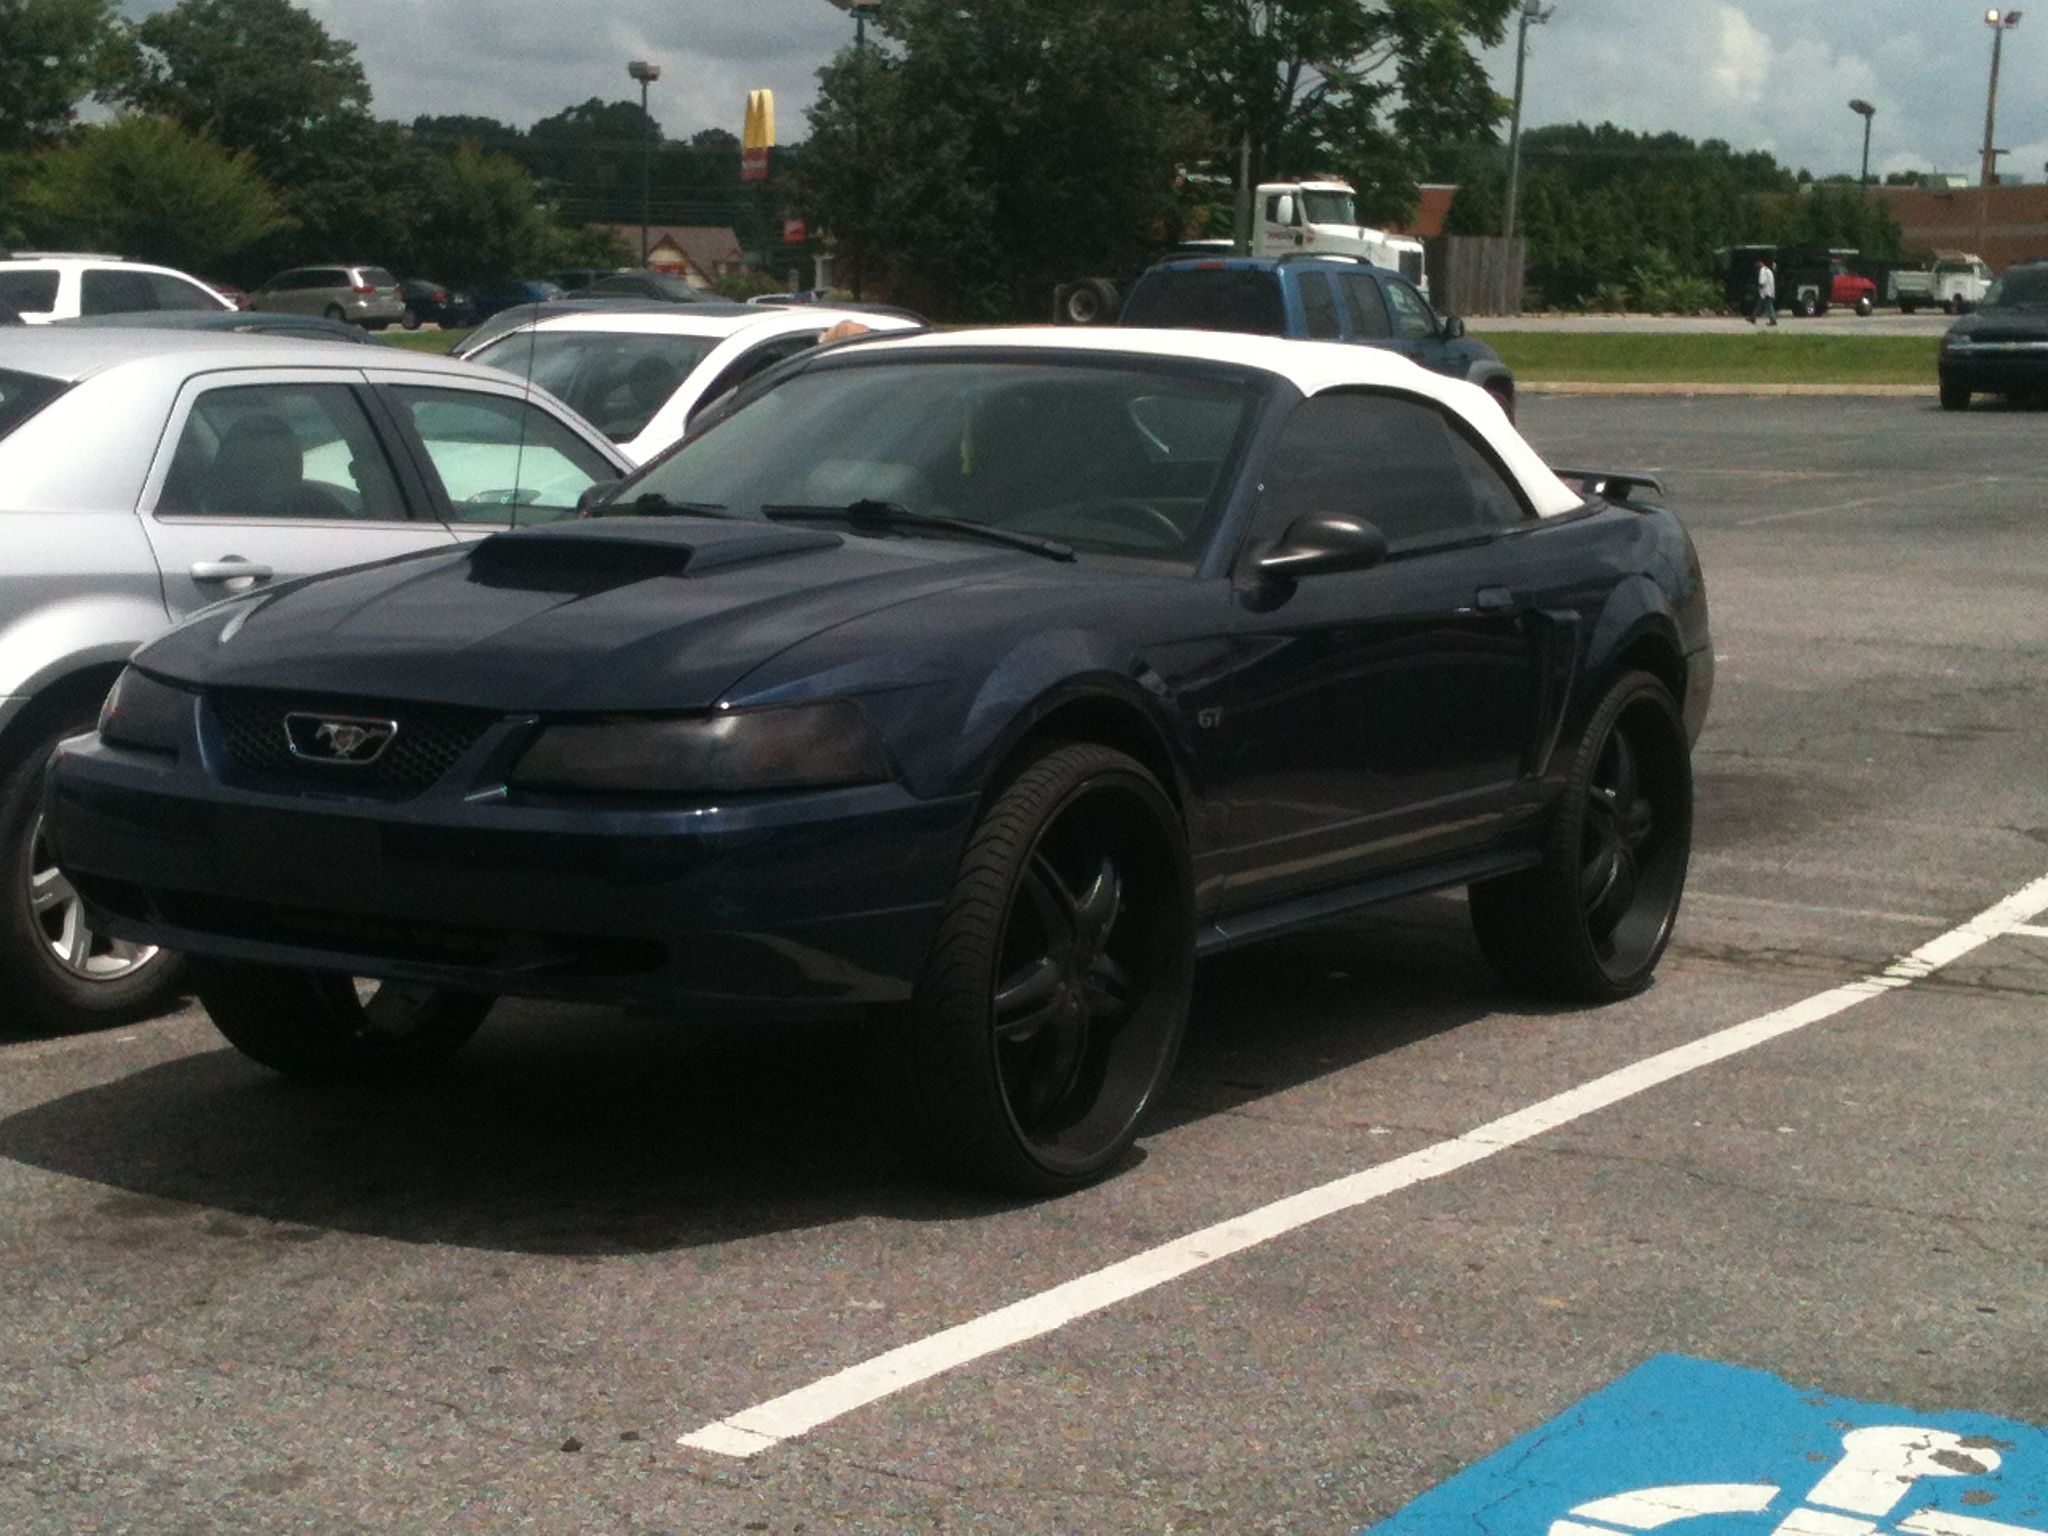 Rediculous Mustang Donk Silly Rides Car Mustang Vehicles